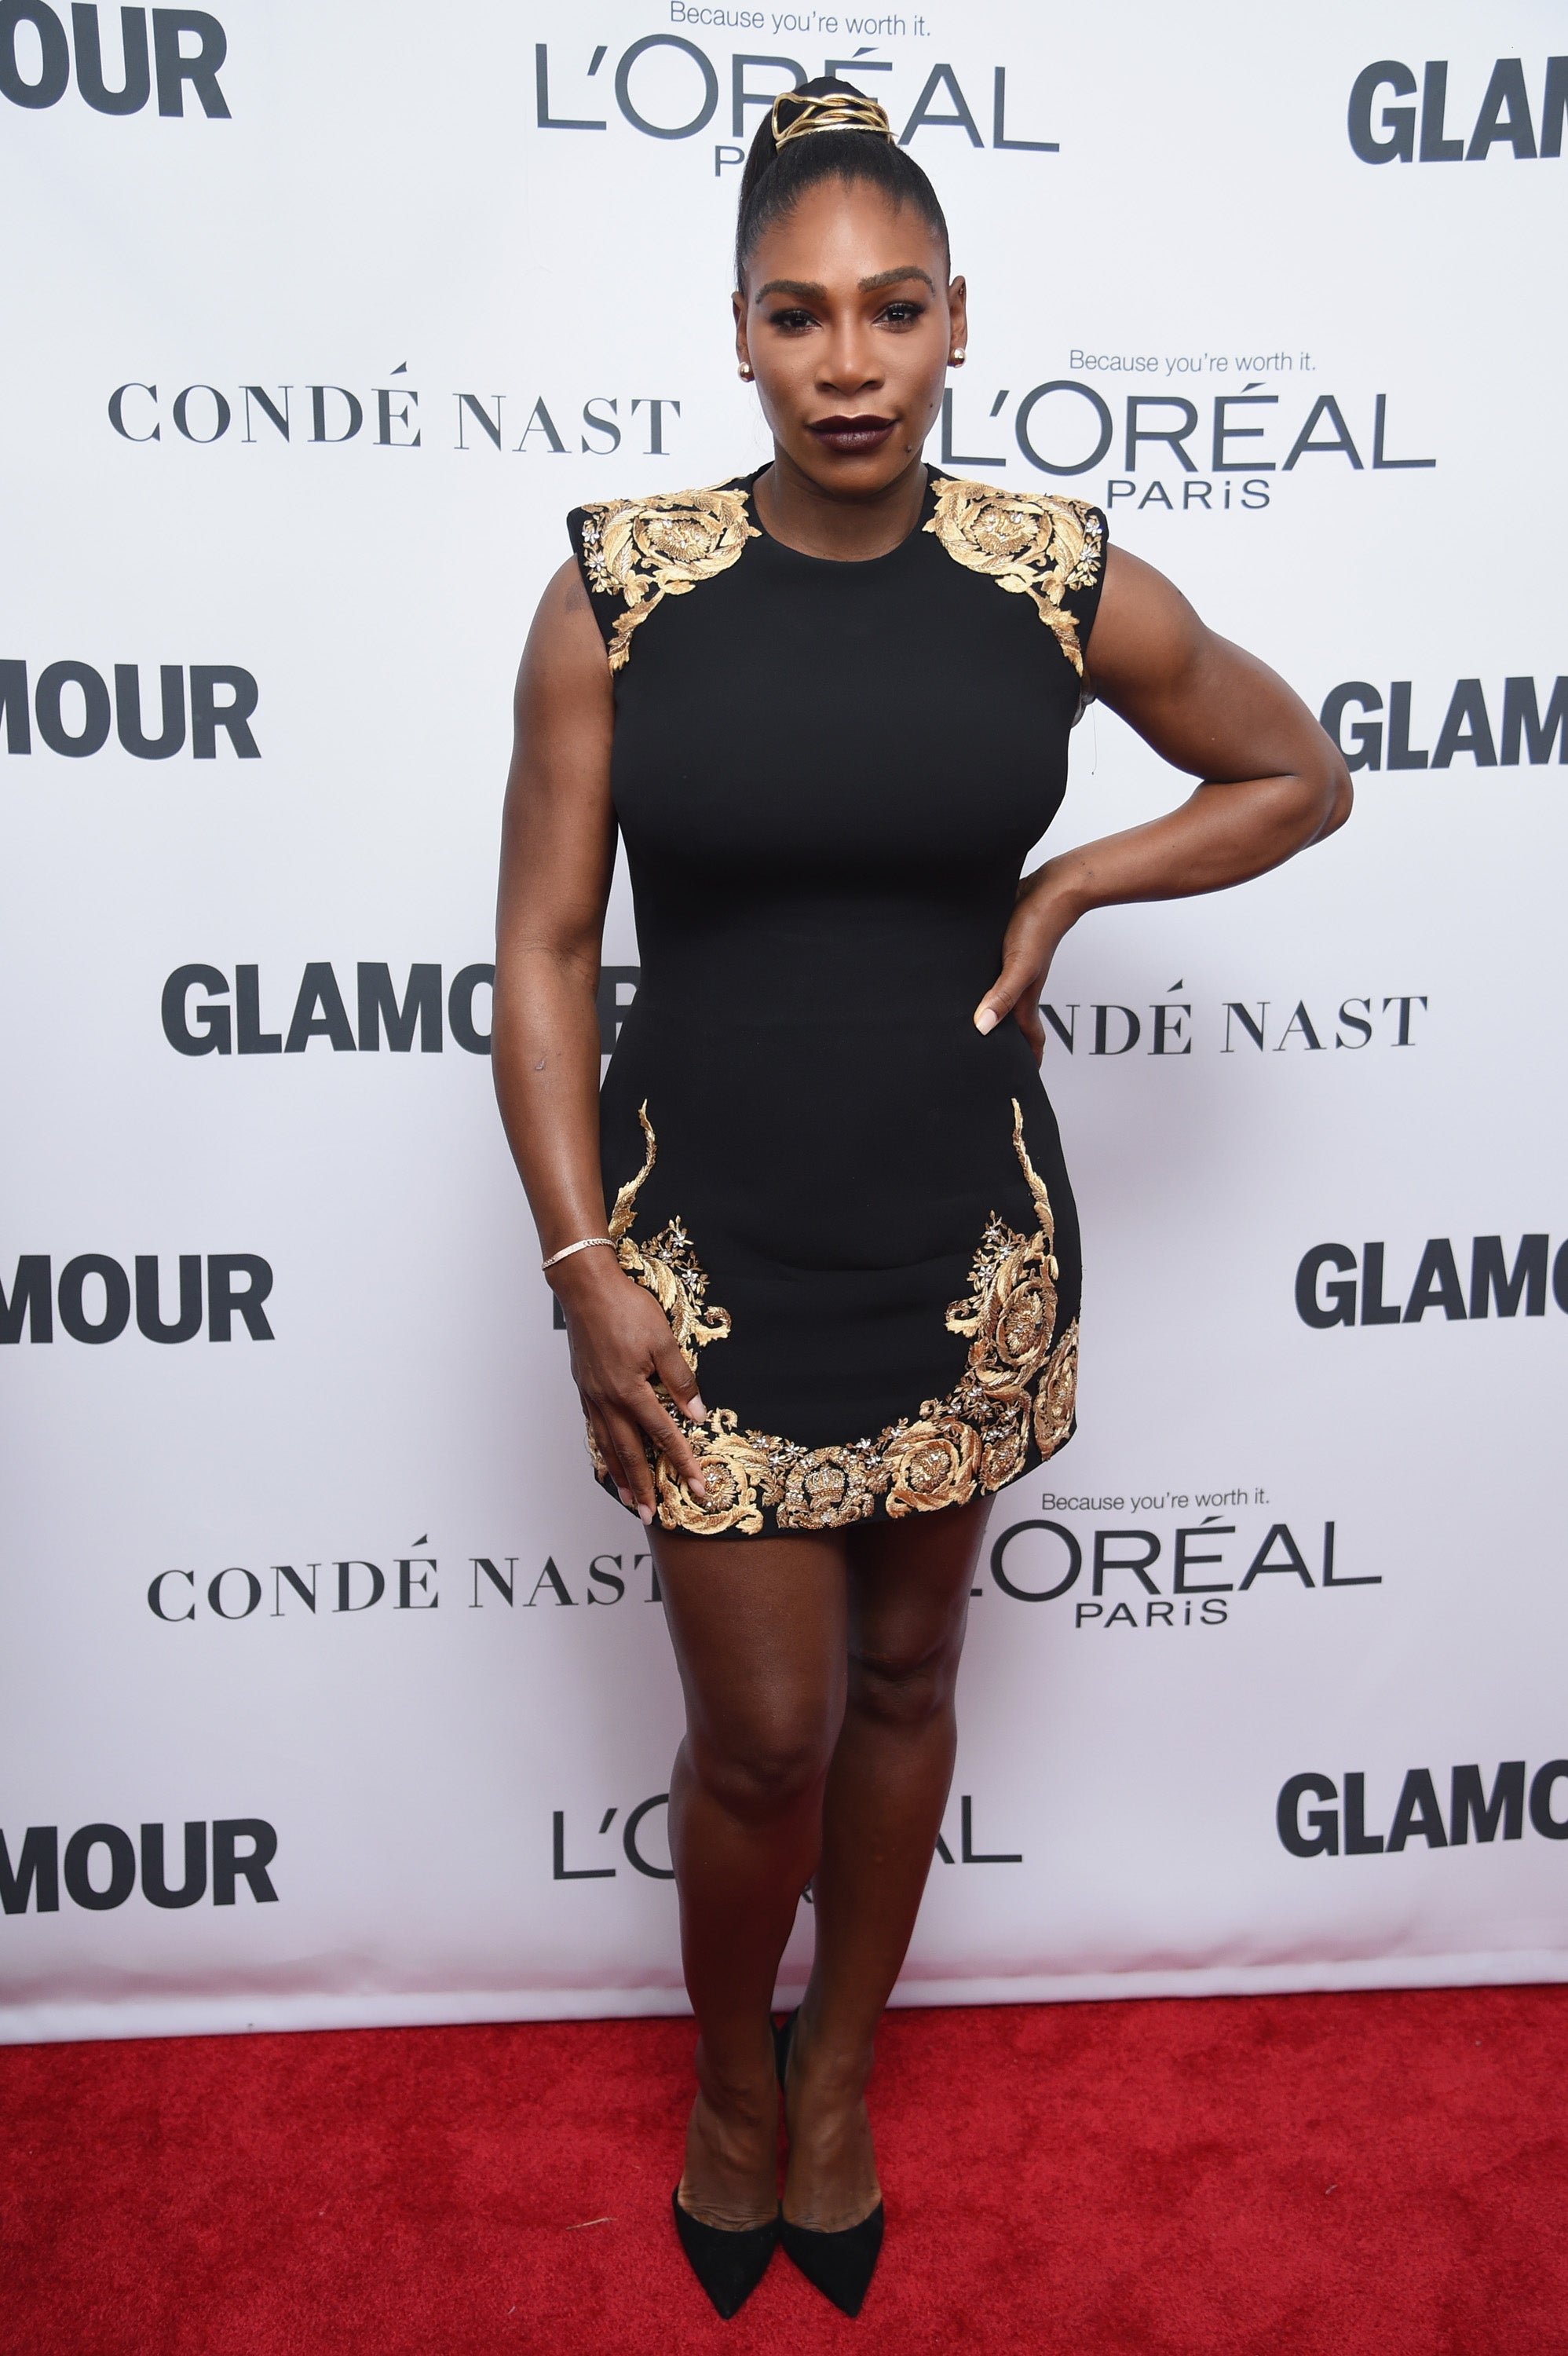 serena williams flaunts her post-baby body on first red carpet since giving birth